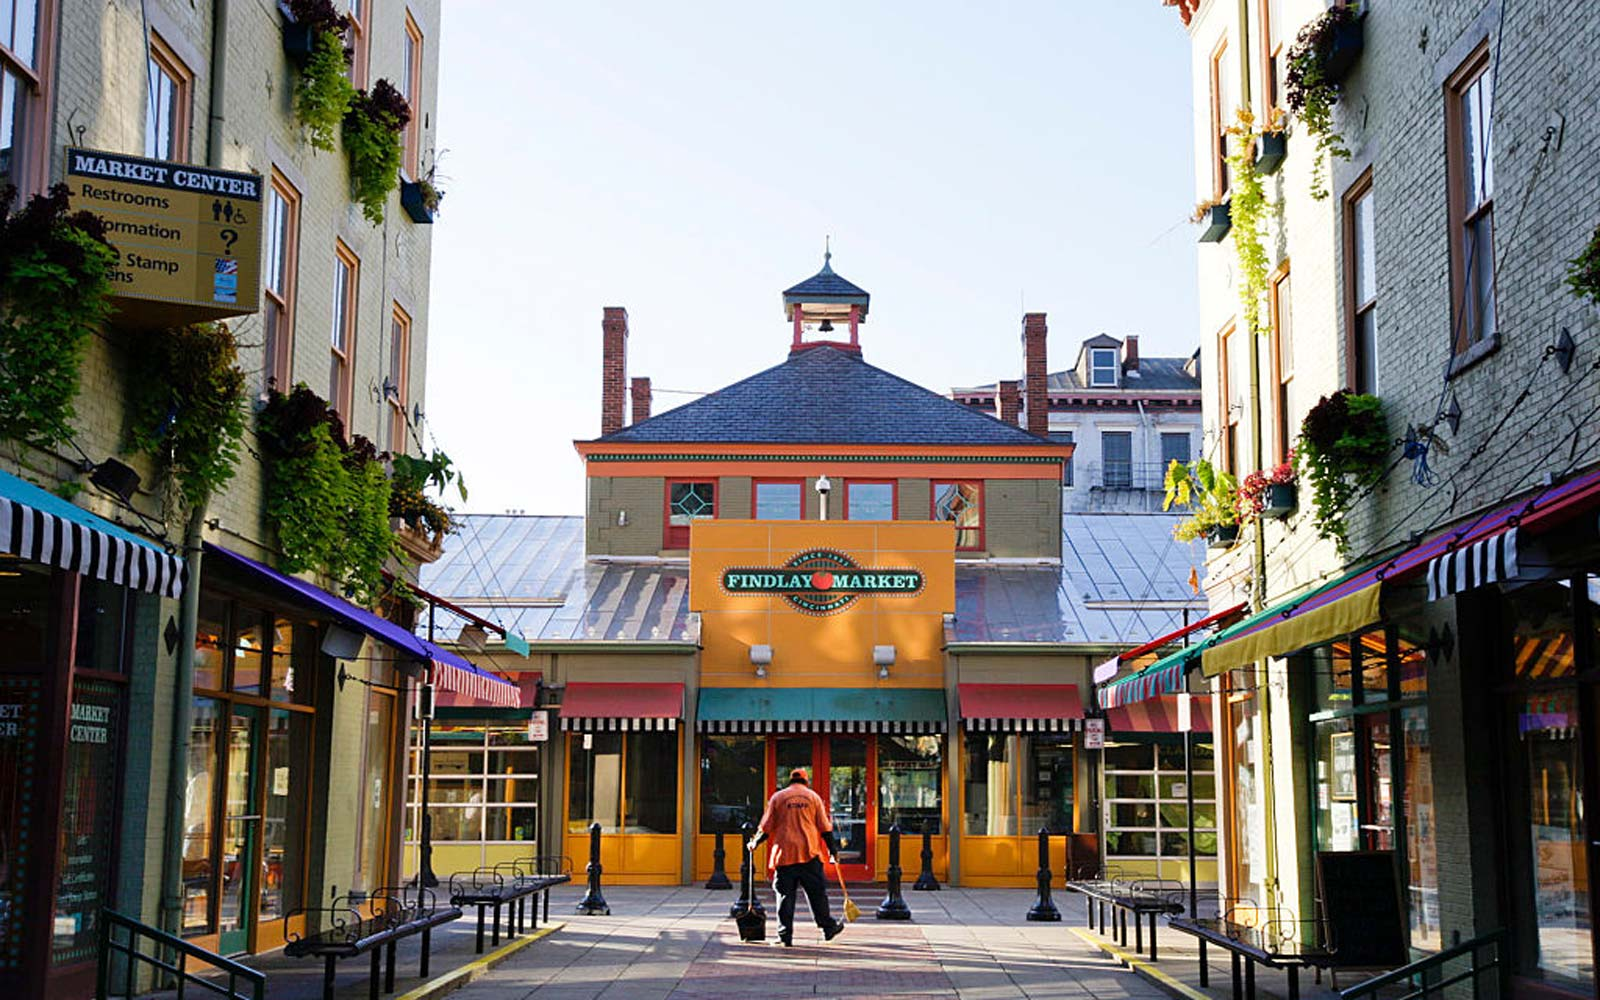 Findlay Market is Ohio's oldest continuously operated public market and one of Cincinnati's most cherished institutions